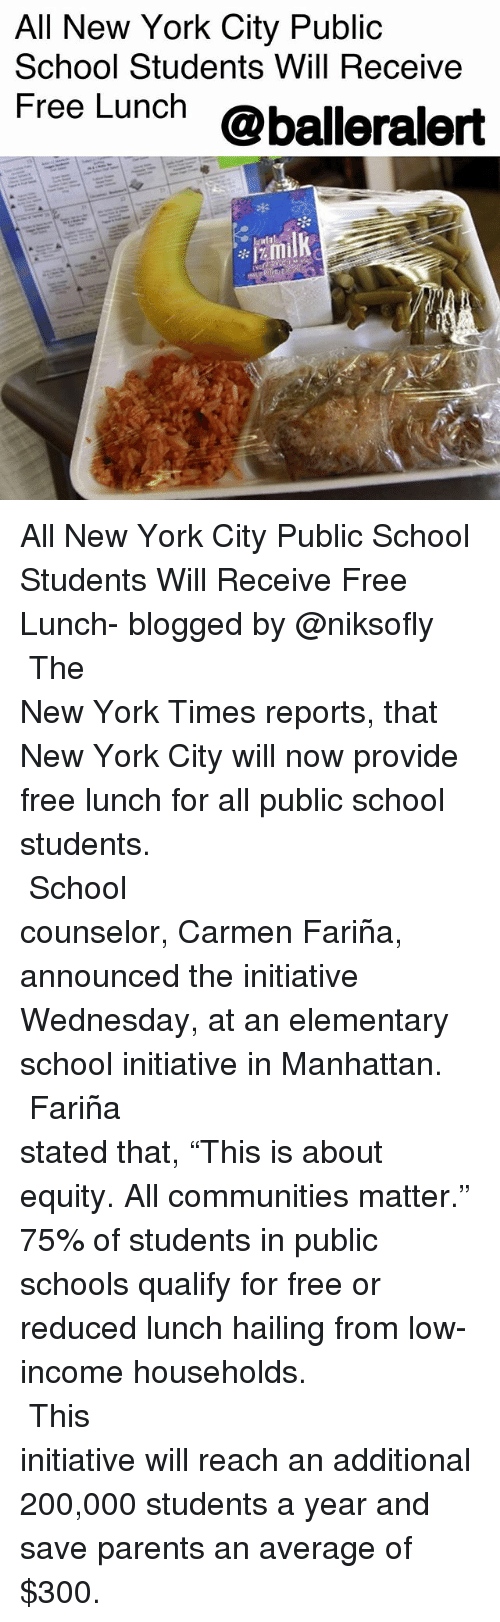 """Bailey Jay, Memes, and New York: All New York City Public  School Students Will Receive  Free Lunch @balleralert All New York City Public School Students Will Receive Free Lunch- blogged by @niksofly ⠀⠀⠀⠀⠀⠀⠀⠀⠀⠀⠀⠀⠀⠀⠀⠀⠀⠀⠀⠀⠀⠀⠀⠀⠀⠀⠀⠀⠀⠀⠀⠀⠀⠀⠀⠀ The New York Times reports, that New York City will now provide free lunch for all public school students. ⠀⠀⠀⠀⠀⠀⠀⠀⠀⠀⠀⠀⠀⠀⠀⠀⠀⠀⠀⠀⠀⠀⠀⠀⠀⠀⠀⠀⠀⠀⠀⠀⠀⠀⠀⠀ School counselor, Carmen Fariña, announced the initiative Wednesday, at an elementary school initiative in Manhattan. ⠀⠀⠀⠀⠀⠀⠀⠀⠀⠀⠀⠀⠀⠀⠀⠀⠀⠀⠀⠀⠀⠀⠀⠀⠀⠀⠀⠀⠀⠀⠀⠀⠀⠀⠀⠀ Fariña stated that, """"This is about equity. All communities matter."""" 75% of students in public schools qualify for free or reduced lunch hailing from low-income households. ⠀⠀⠀⠀⠀⠀⠀⠀⠀⠀⠀⠀⠀⠀⠀⠀⠀⠀⠀⠀⠀⠀⠀⠀⠀⠀⠀⠀⠀⠀⠀⠀⠀⠀⠀⠀ This initiative will reach an additional 200,000 students a year and save parents an average of $300."""